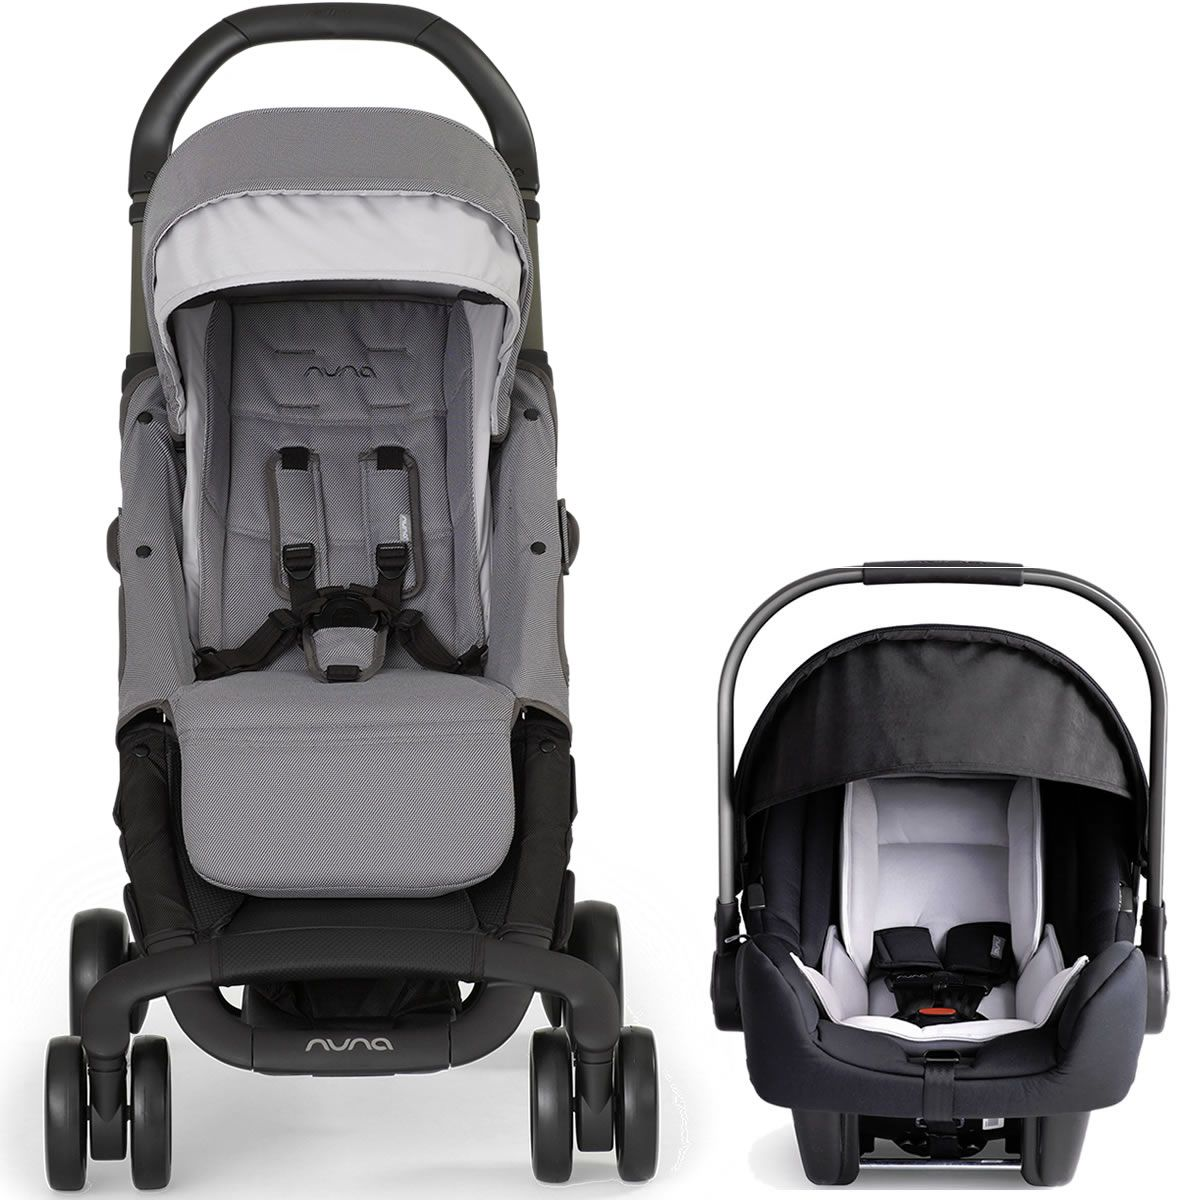 Pin on strollers travel systems